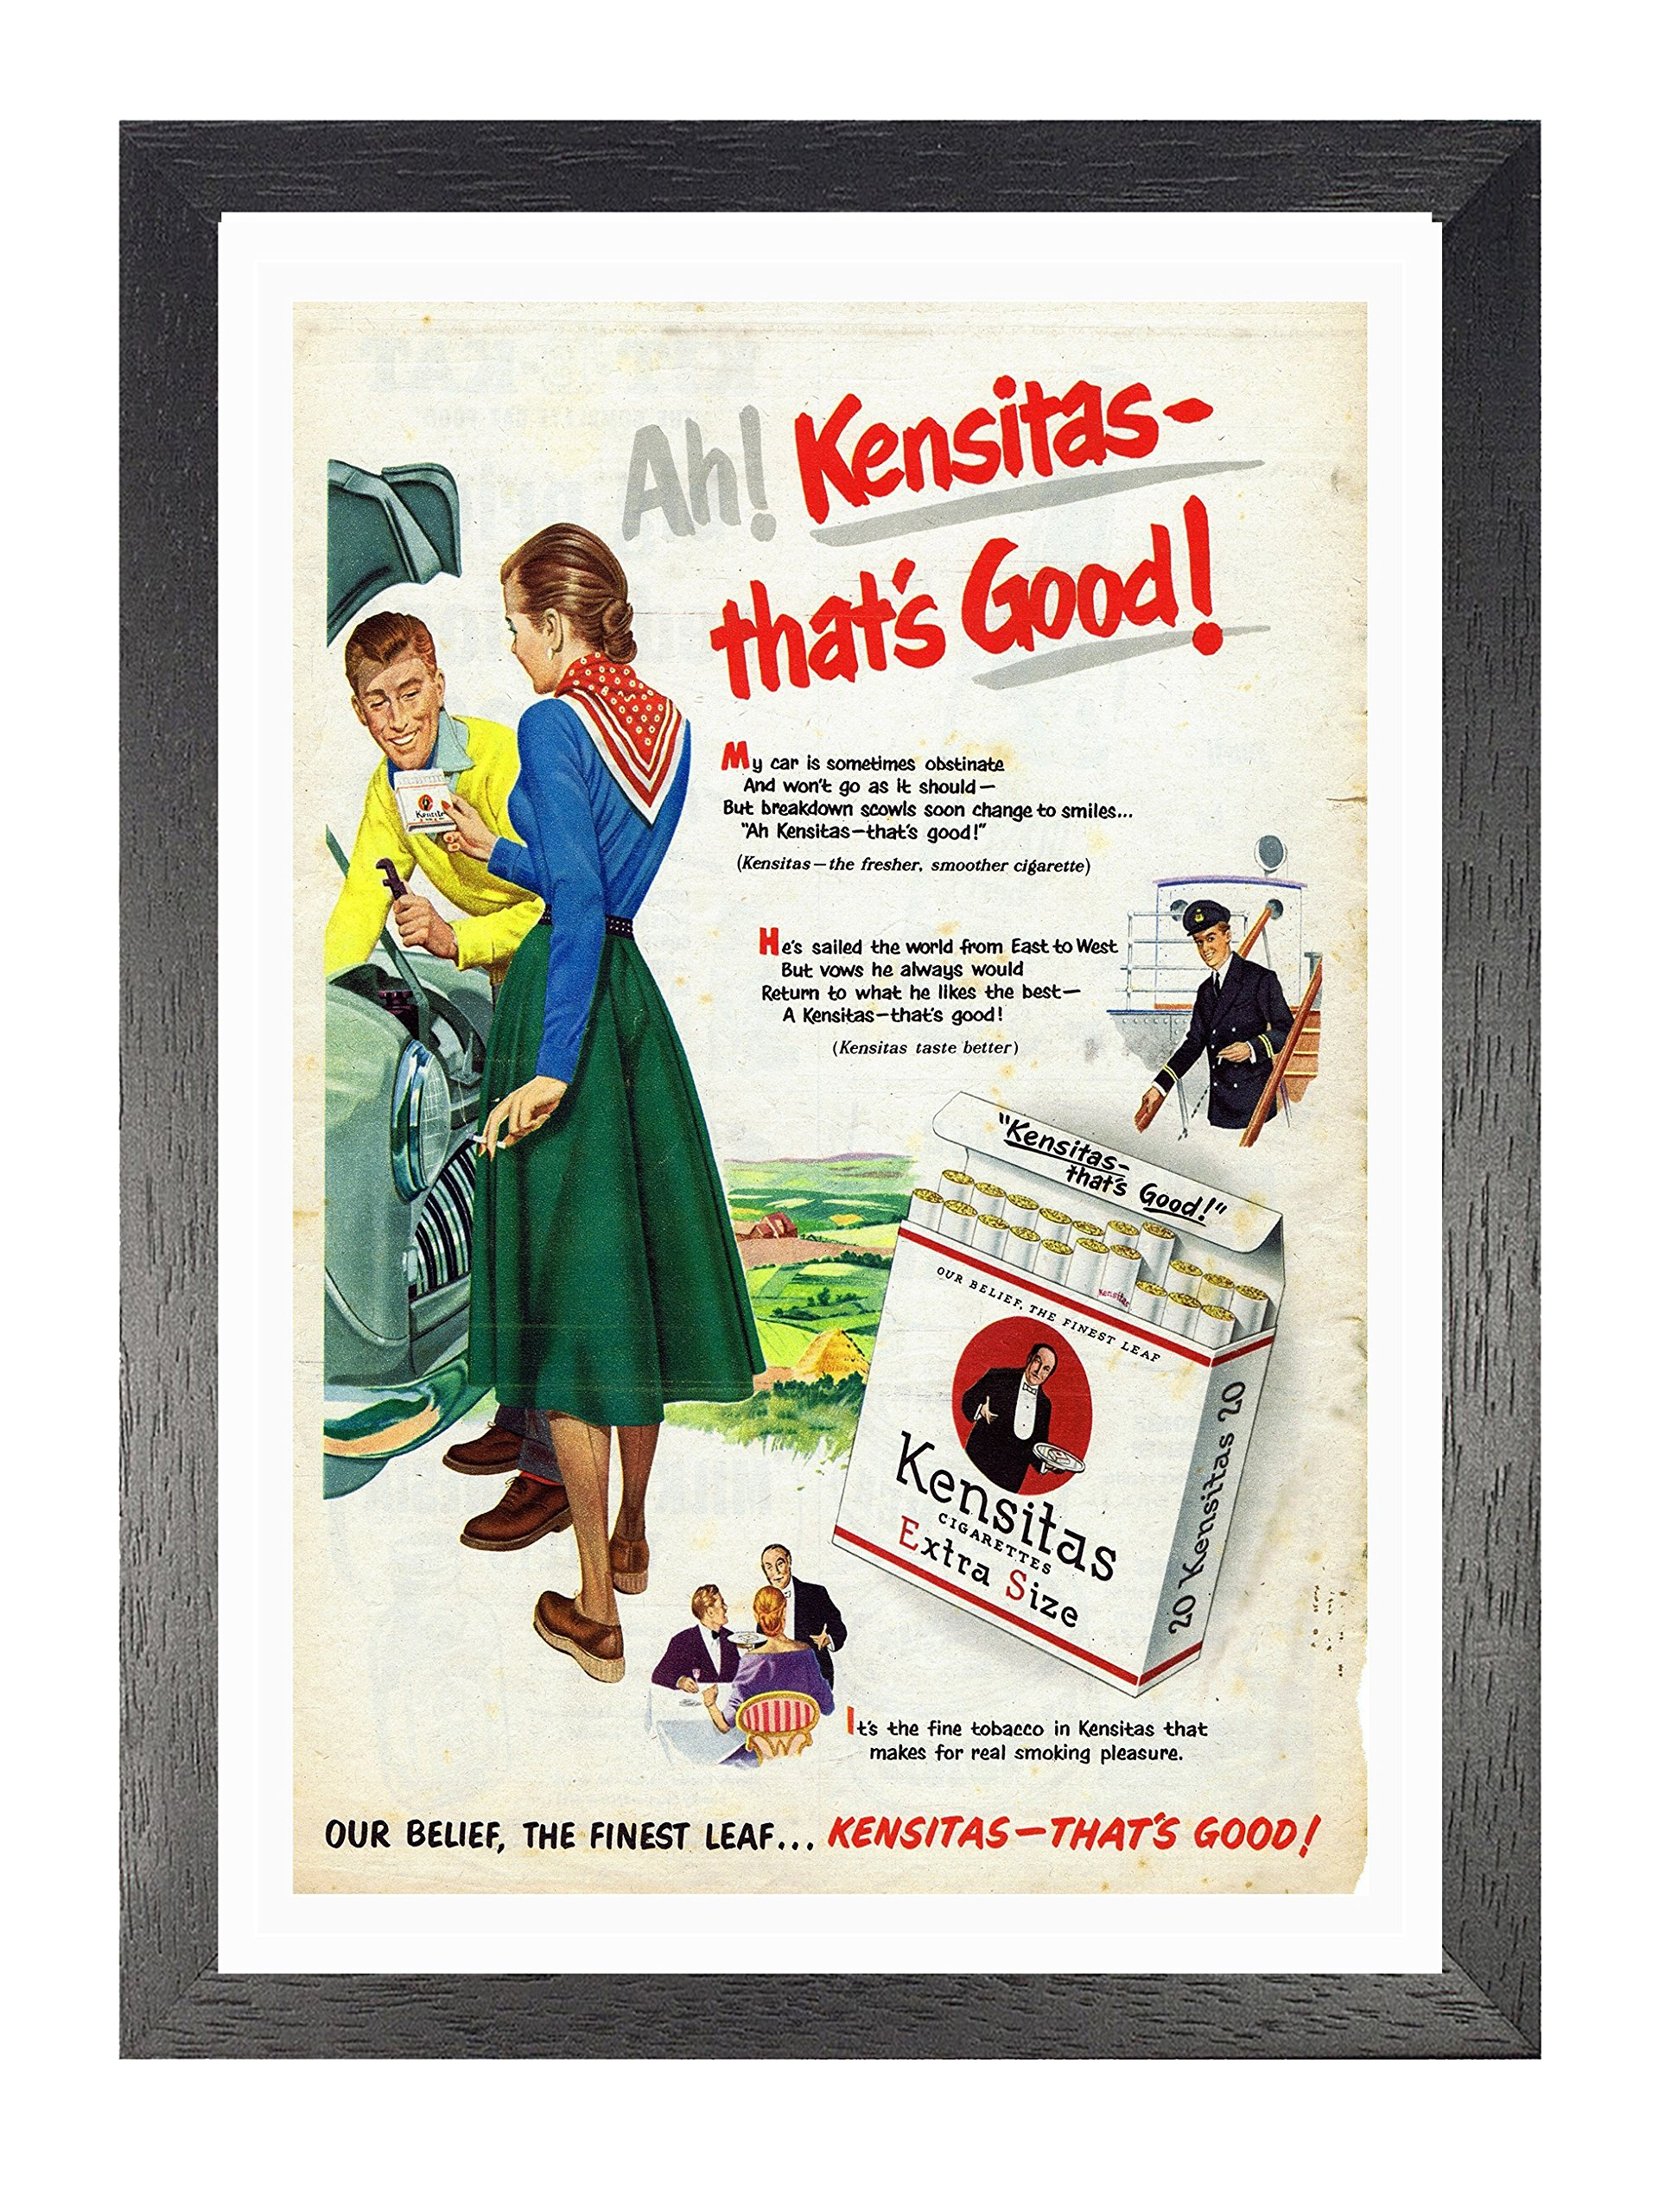 Kensitas A4 Framed Poster Fresher Smoother Cigarette Picture Vintage Old Advert Artwork Classic Old Fashioned Commercial Buy Online In Aruba At Aruba Desertcart Com Productid 64938535